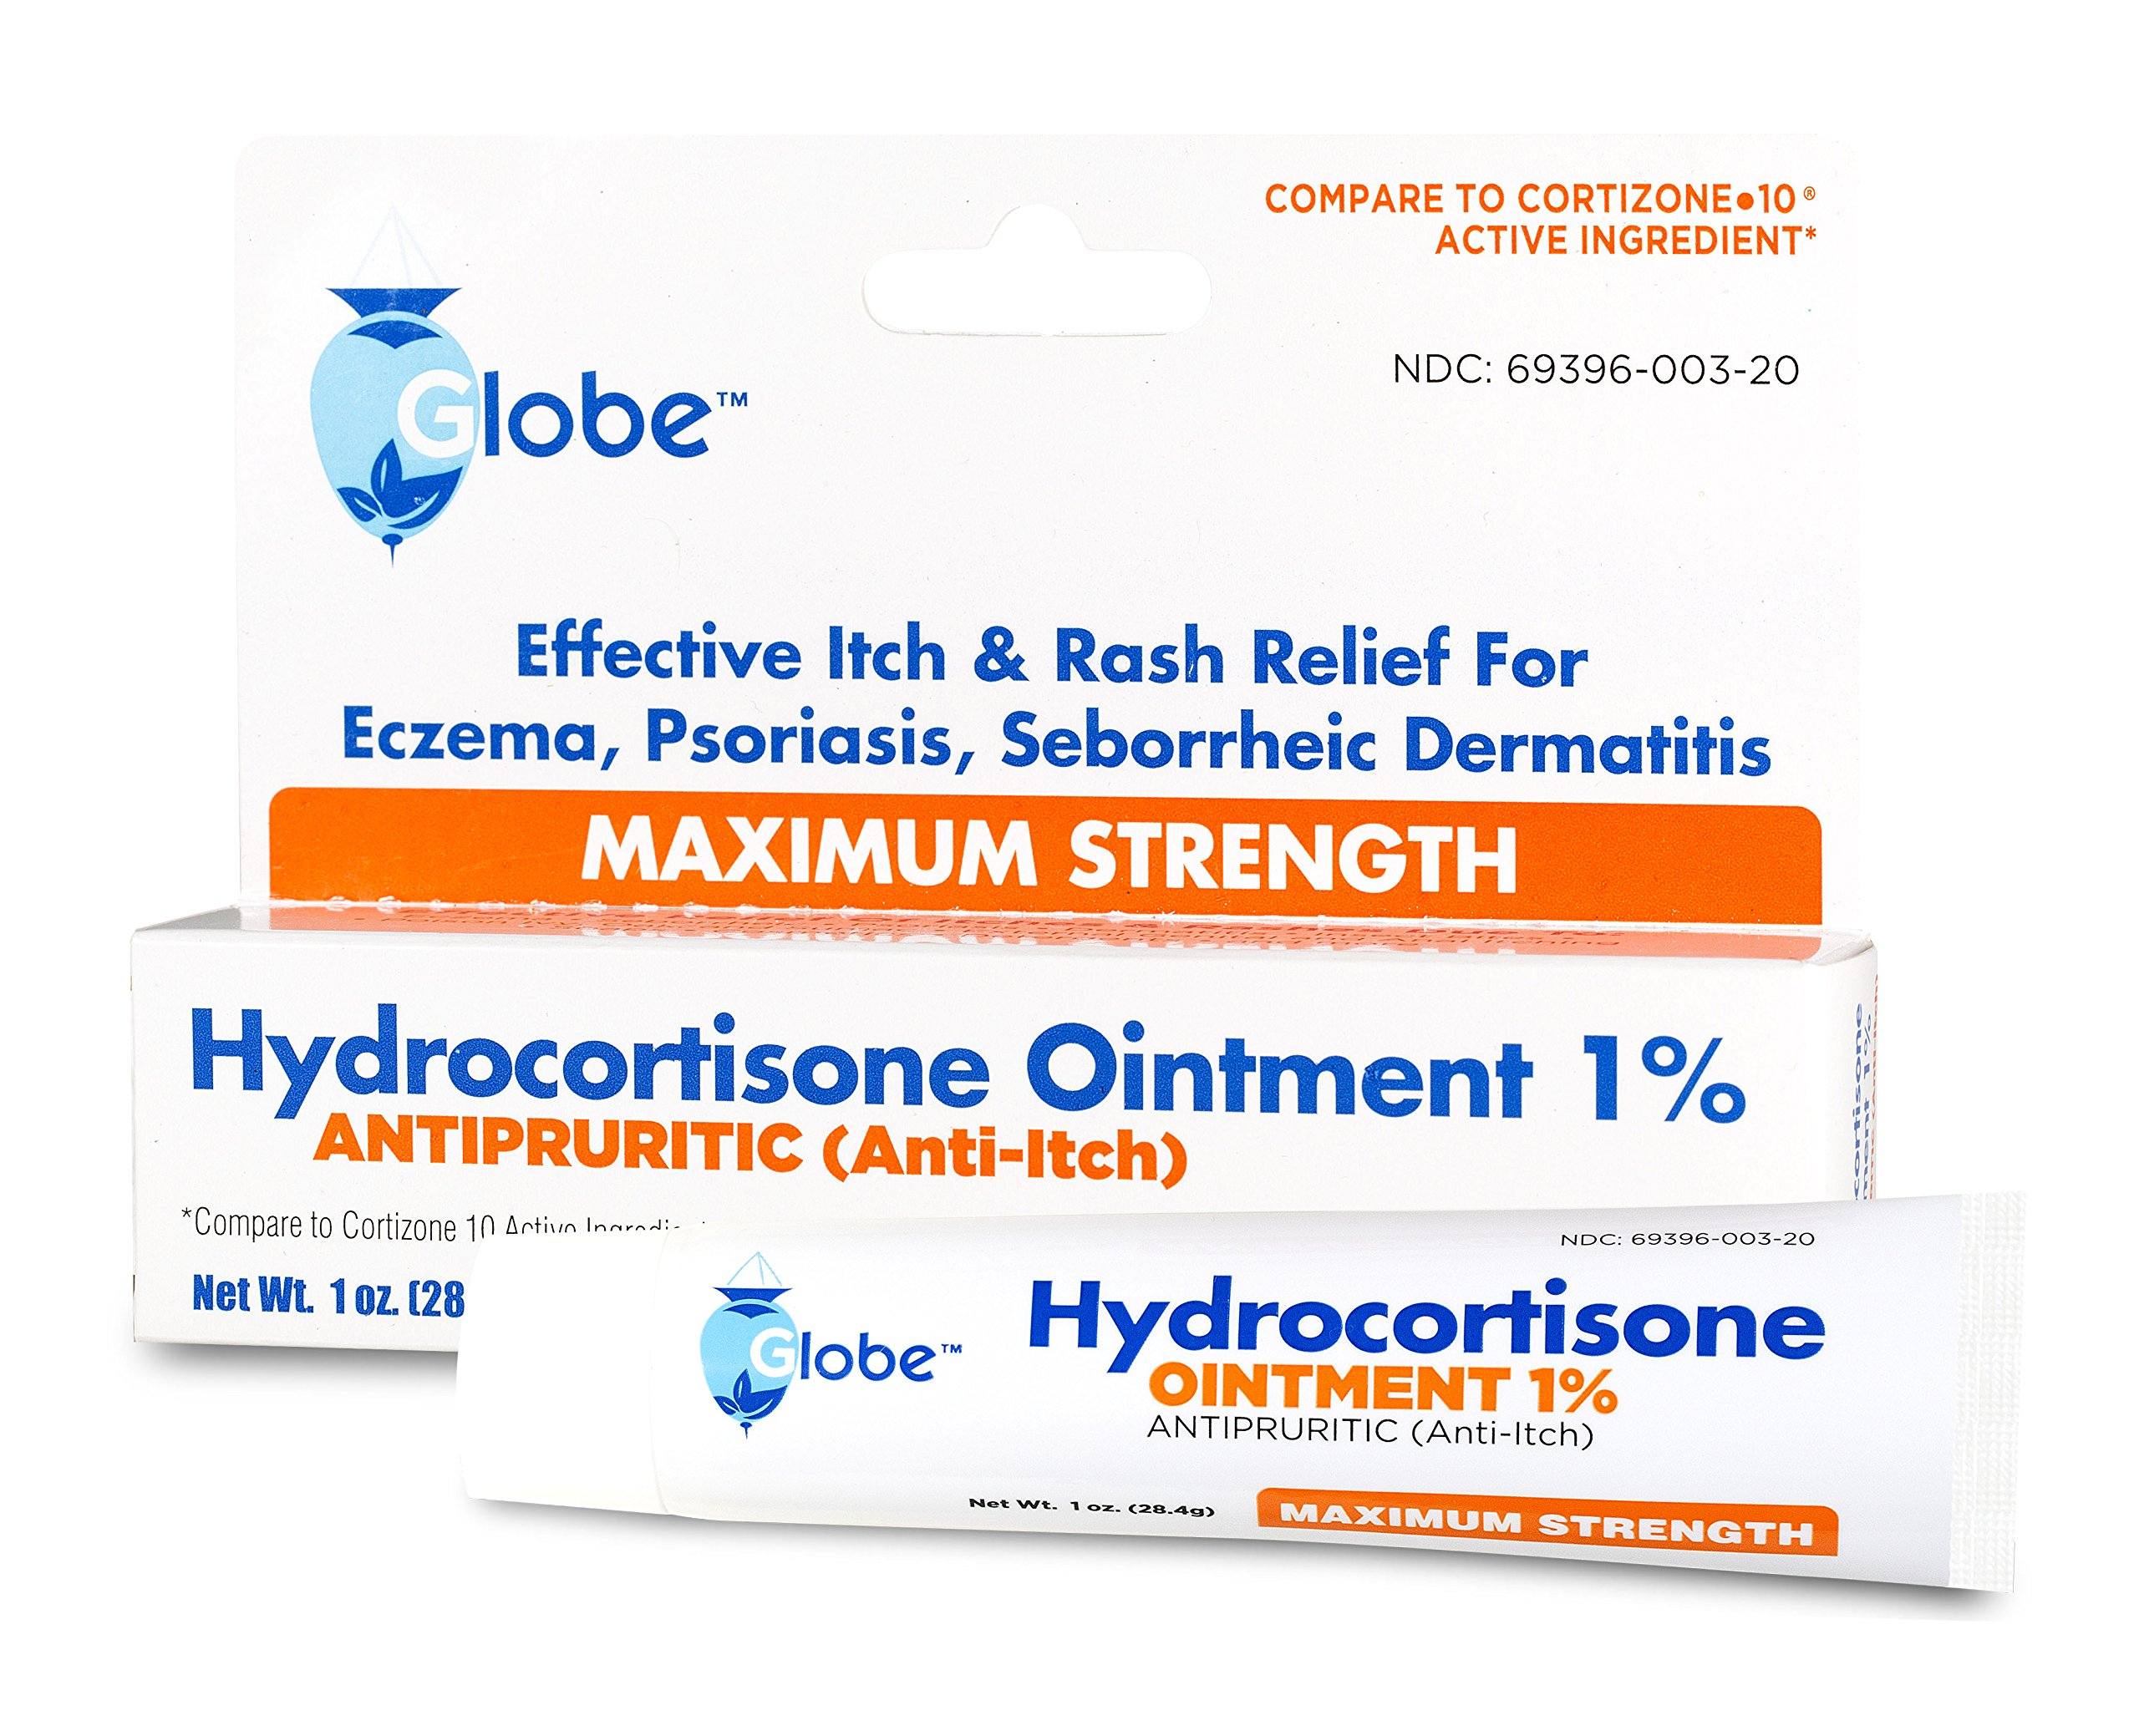 Hydrocortisone Maximum Strength Ointment 1%, USP 1 oz (Compare to the Active Ingredients in Cortizone-10) (180 Tubes/Carton) Distributors Price